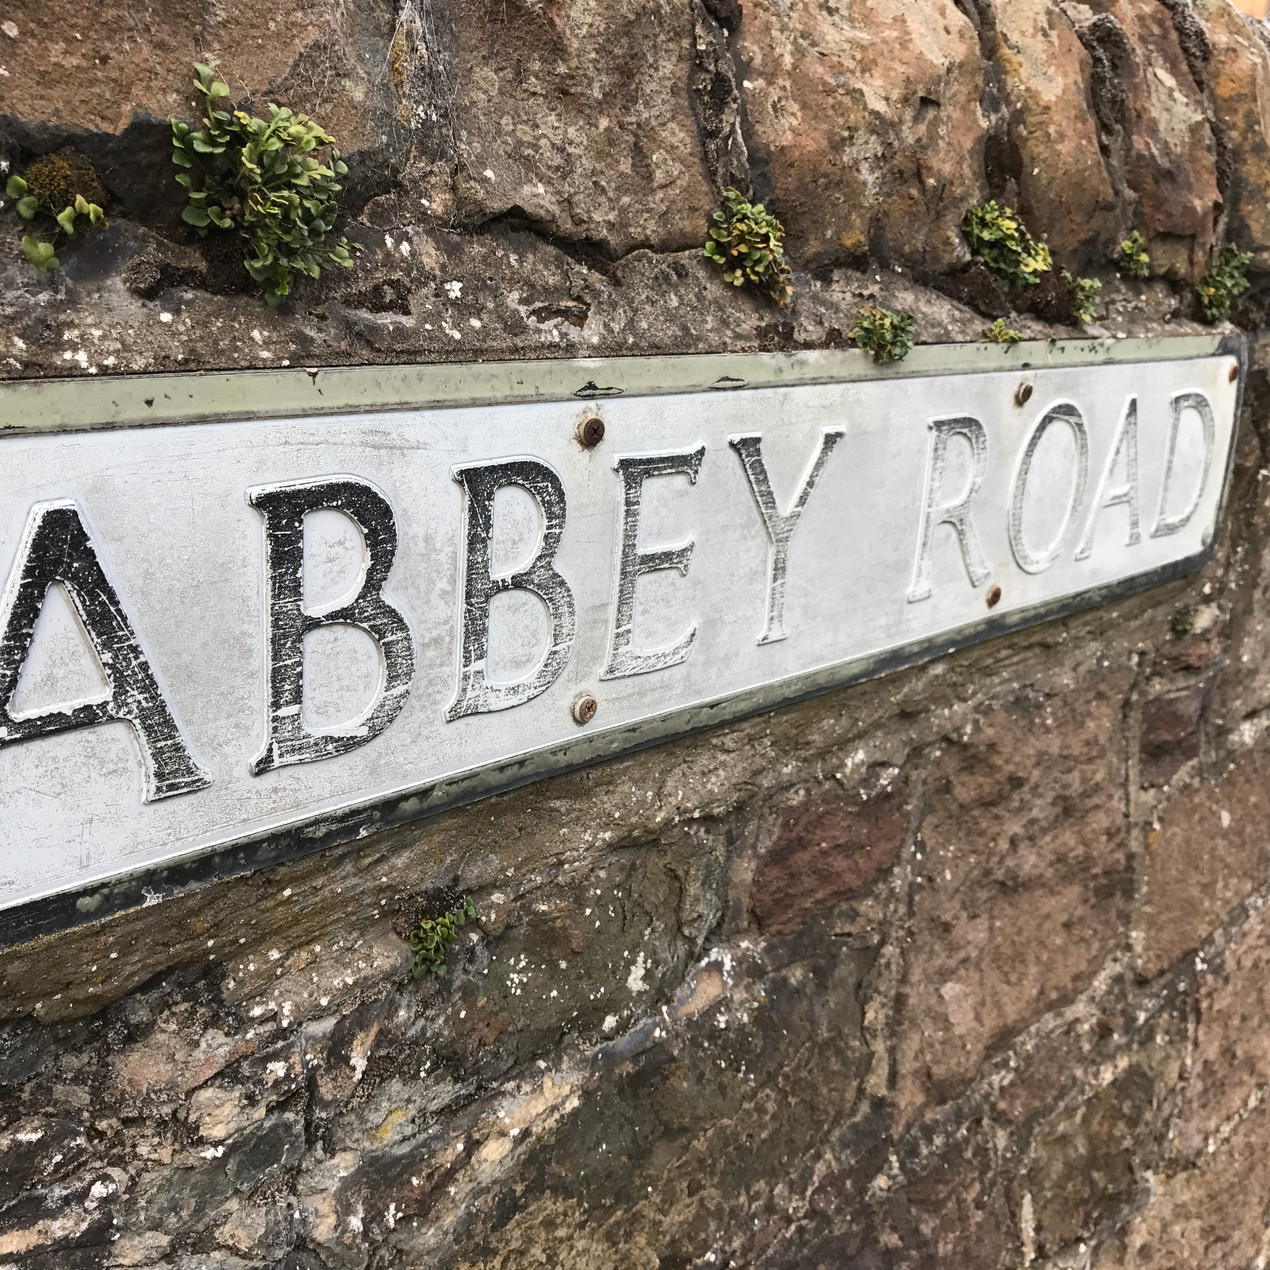 Street sign in England